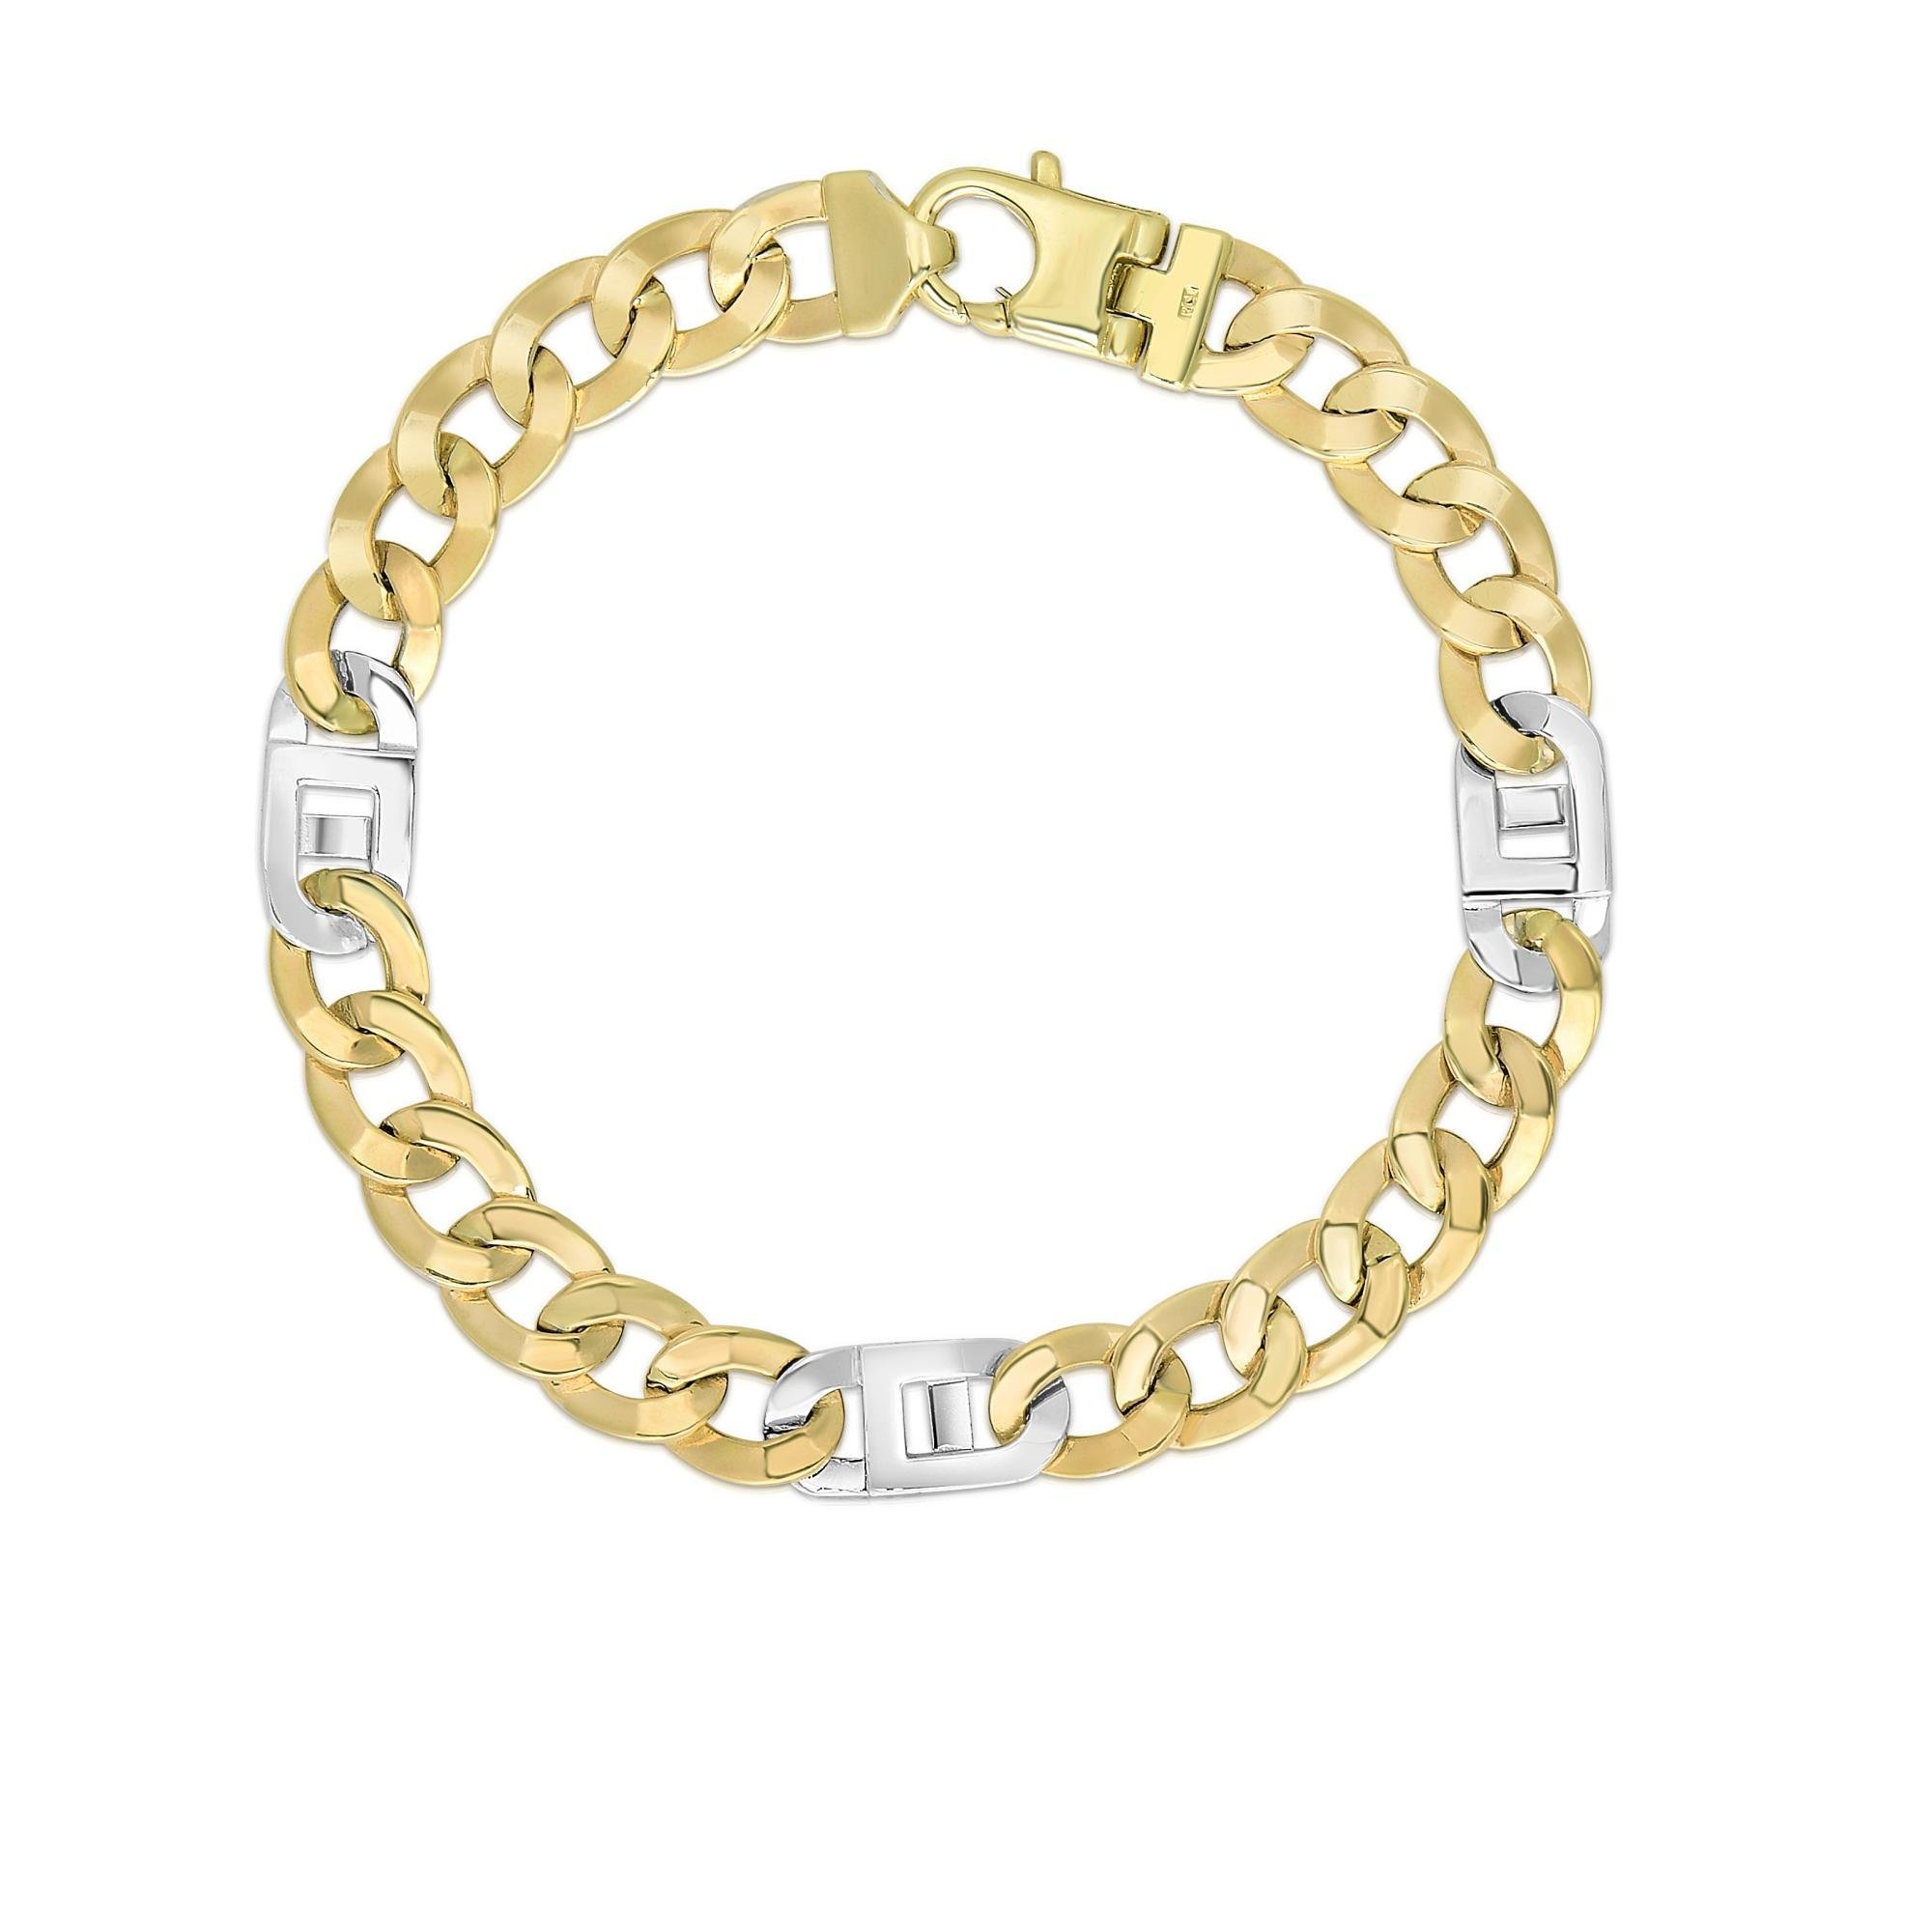 14k Two Tone Yellow And White Gold 8.5 Inch Polish Finish Curb Mariner Bracelet